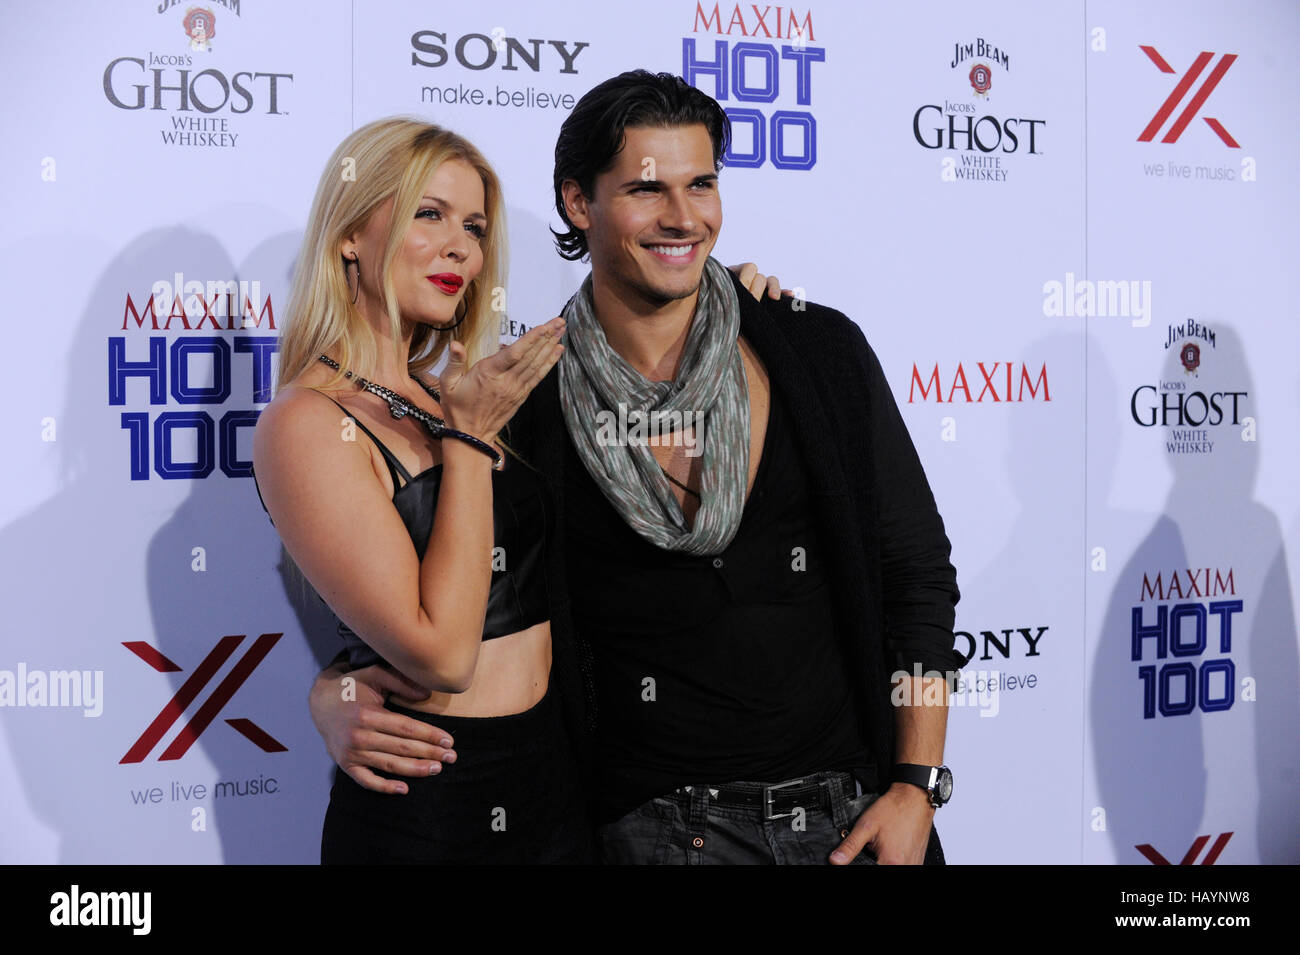 Elena Samadanova and Gleb Savchenko attend the Maxim 2013 Hot 100 Annual Party held at Vanguard on May 15, 2013 - Stock Image